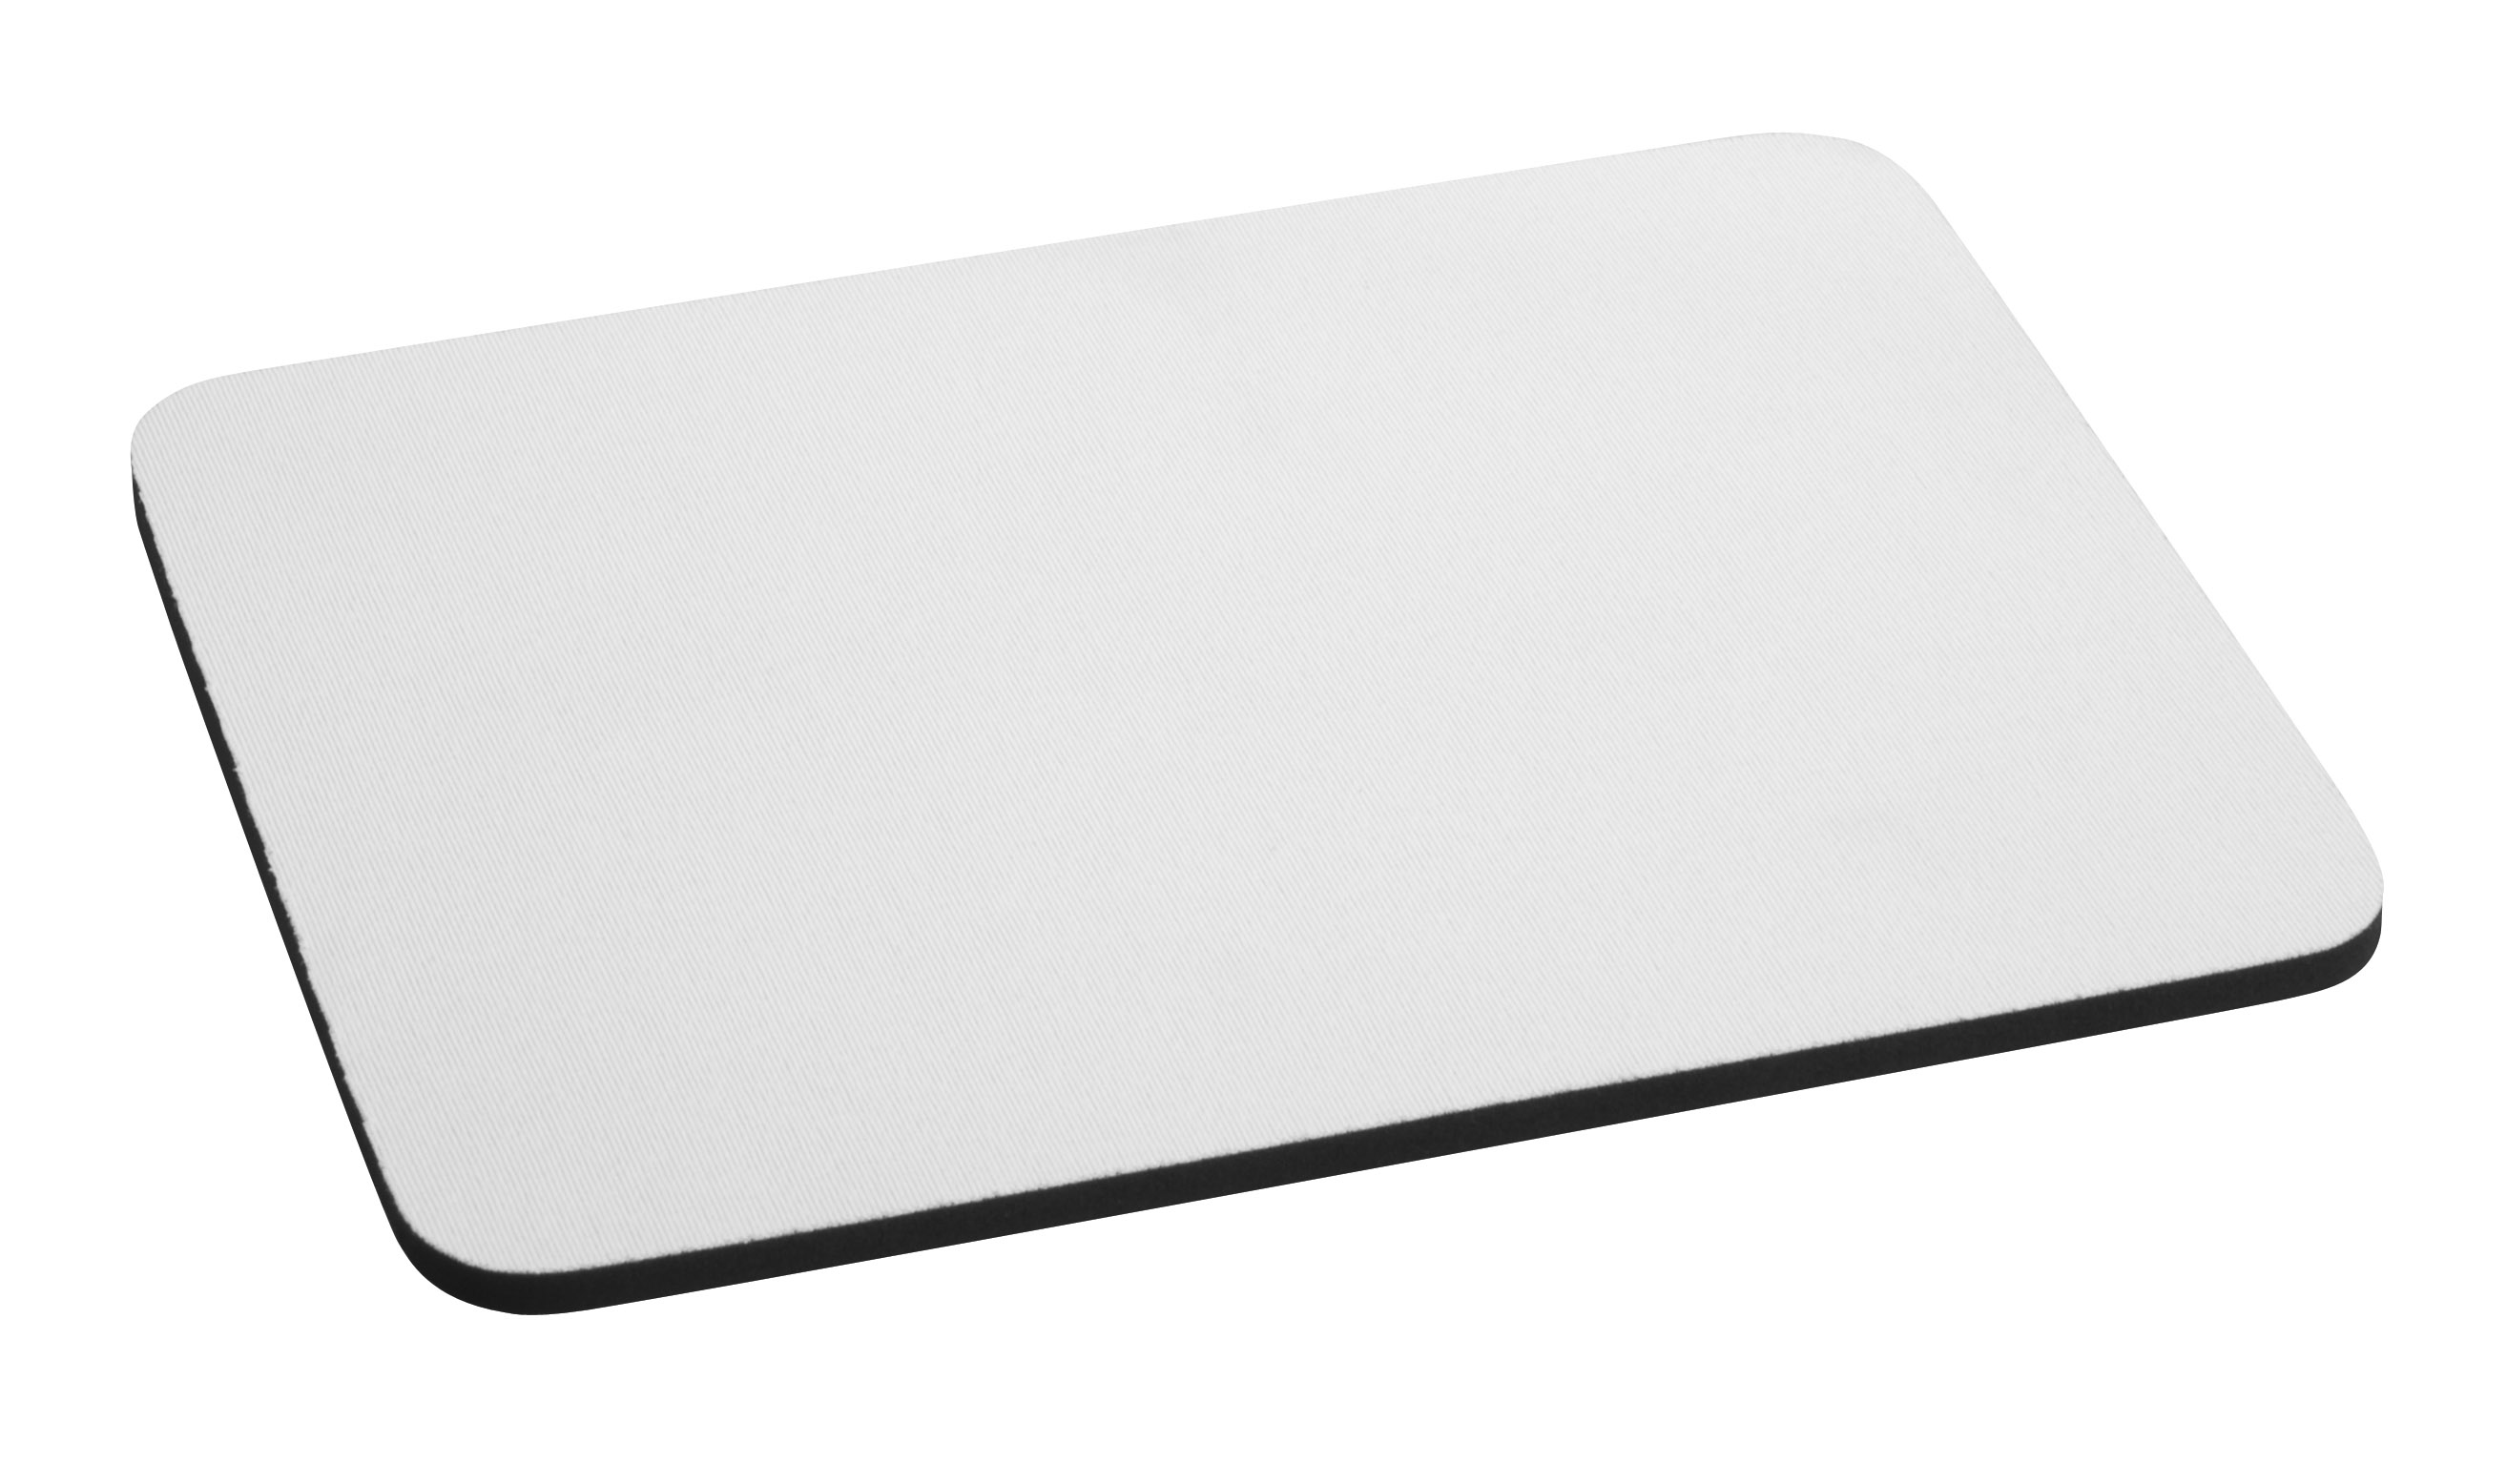 Offering black and white mouse pads, rubber material.